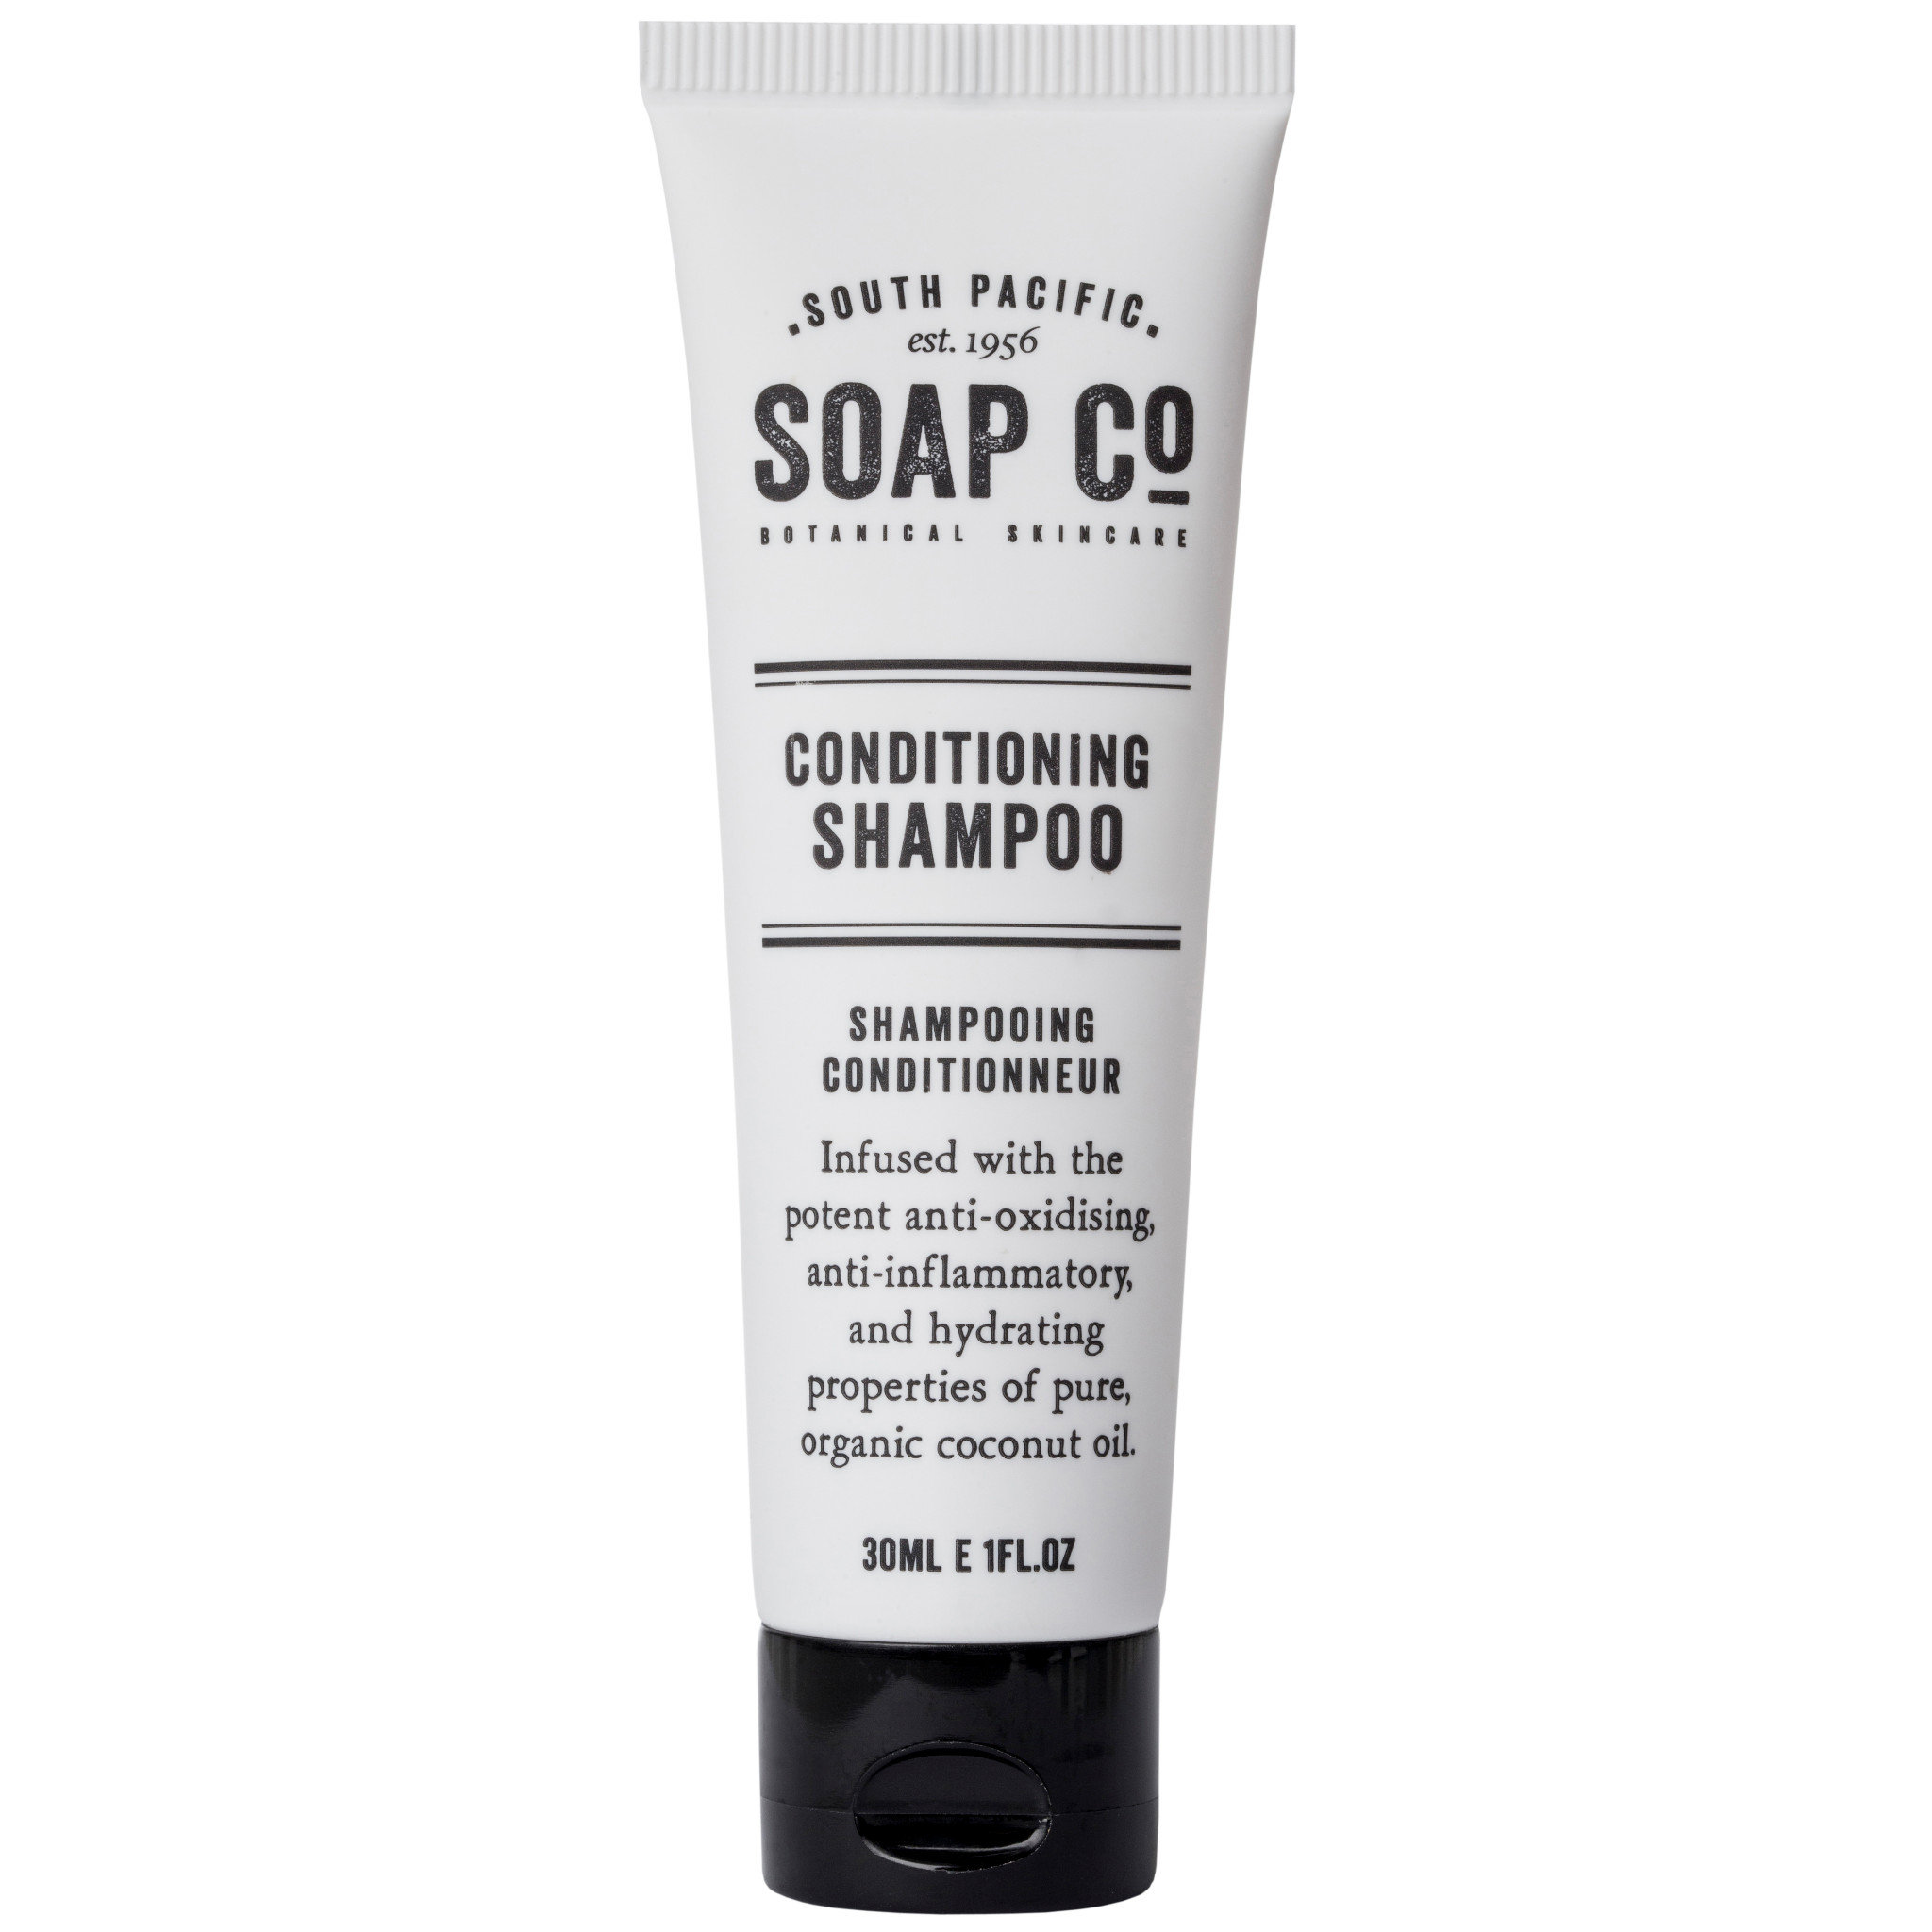 South Pacific Soap Co 2in1 Cond/Shamp